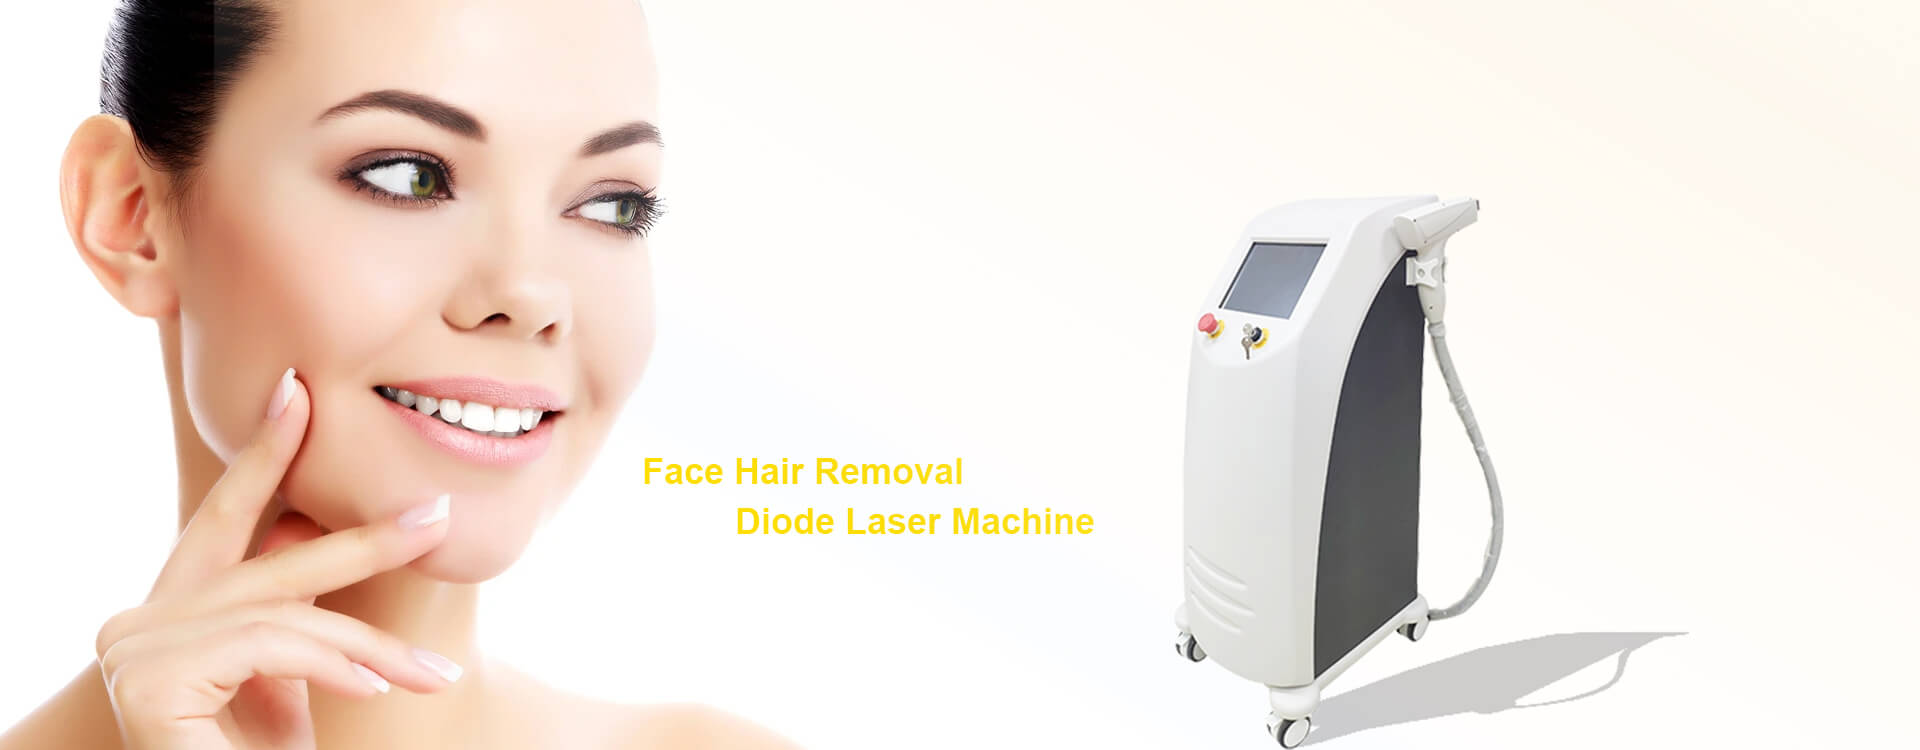 Best Facial Laser Hair Removal For Women Treatment Machine